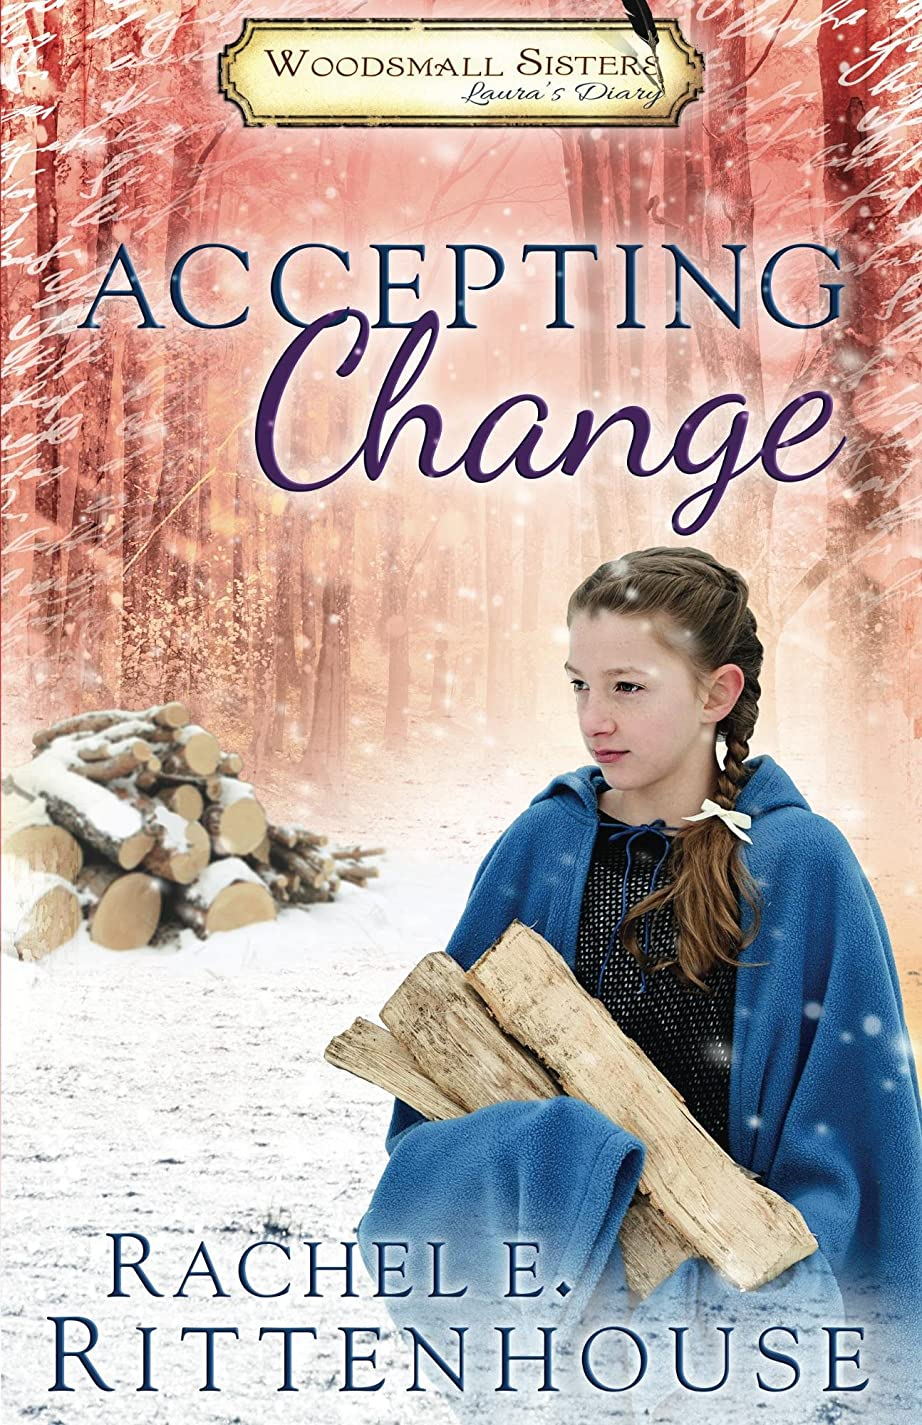 Accepting Change: The Diaries of the Woodsmall Sisters: Book 3 - Laura's Diary (English Edition)